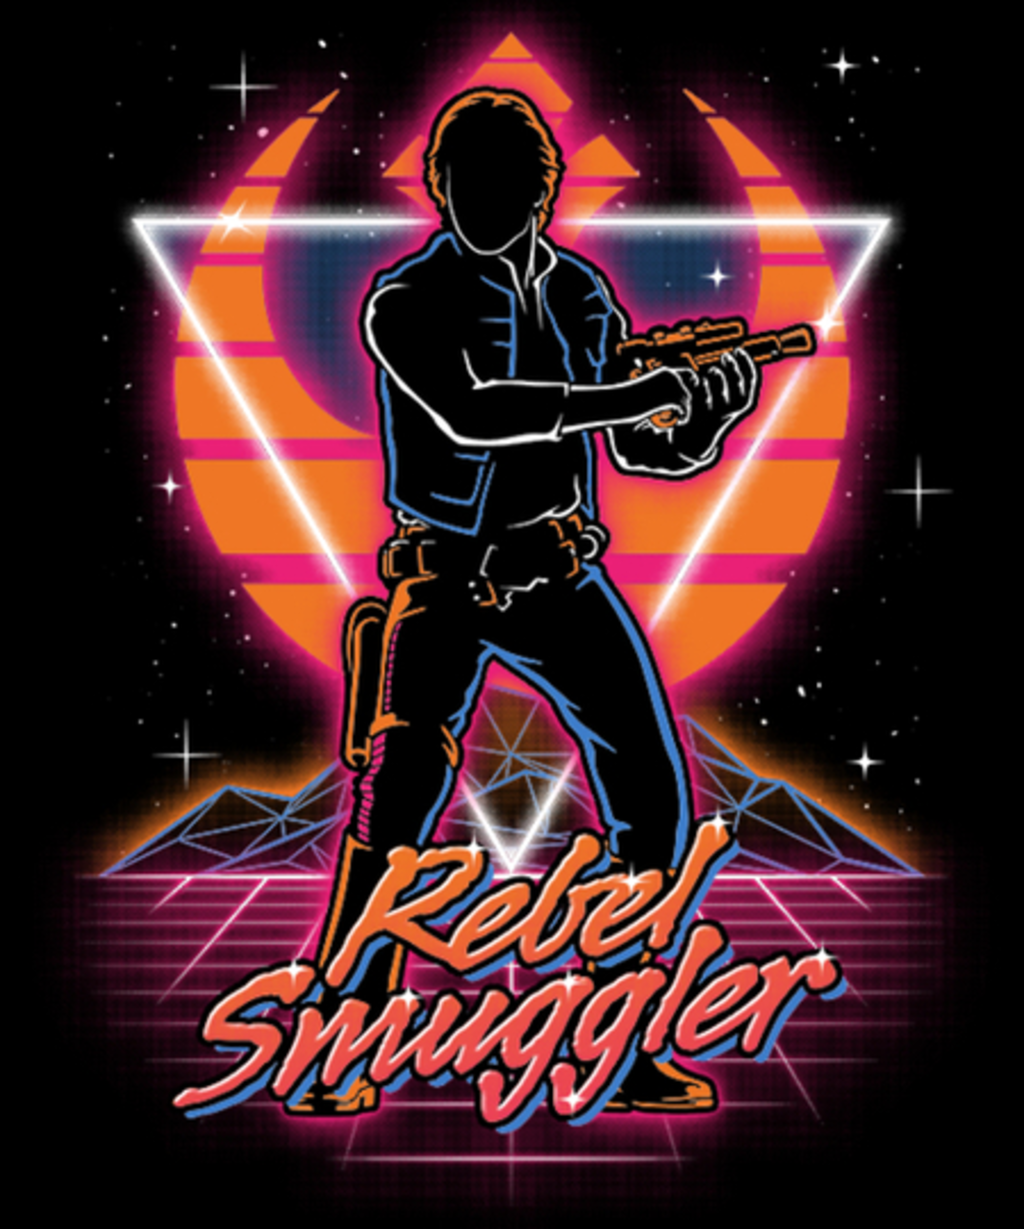 Qwertee: Retro Rebel Smuggler